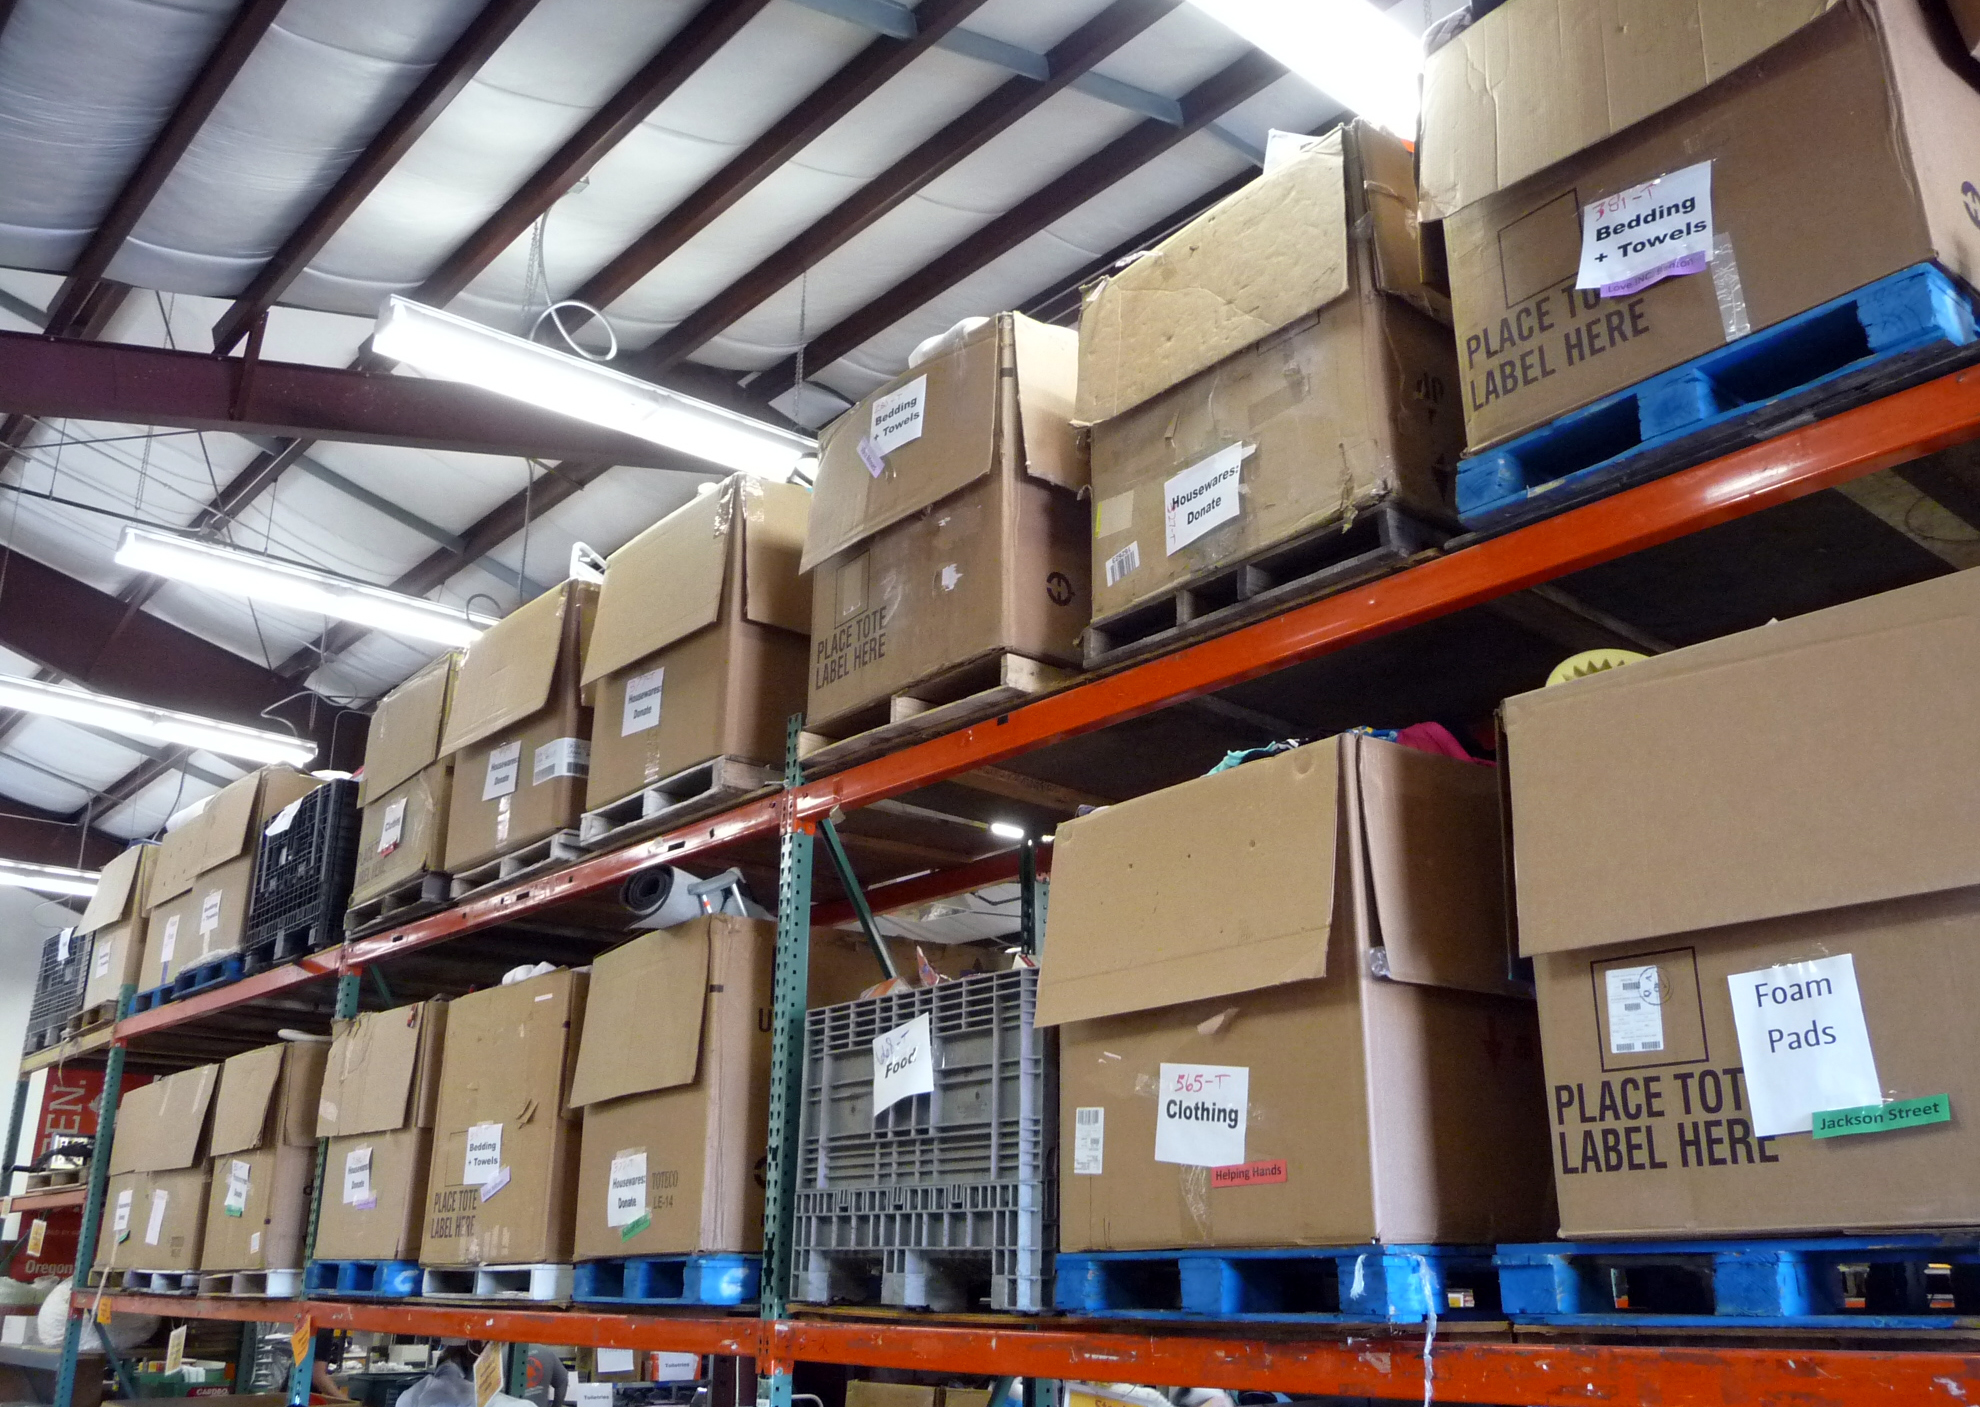 Pallet-size boxes full of donations await pick-up by non-profits.